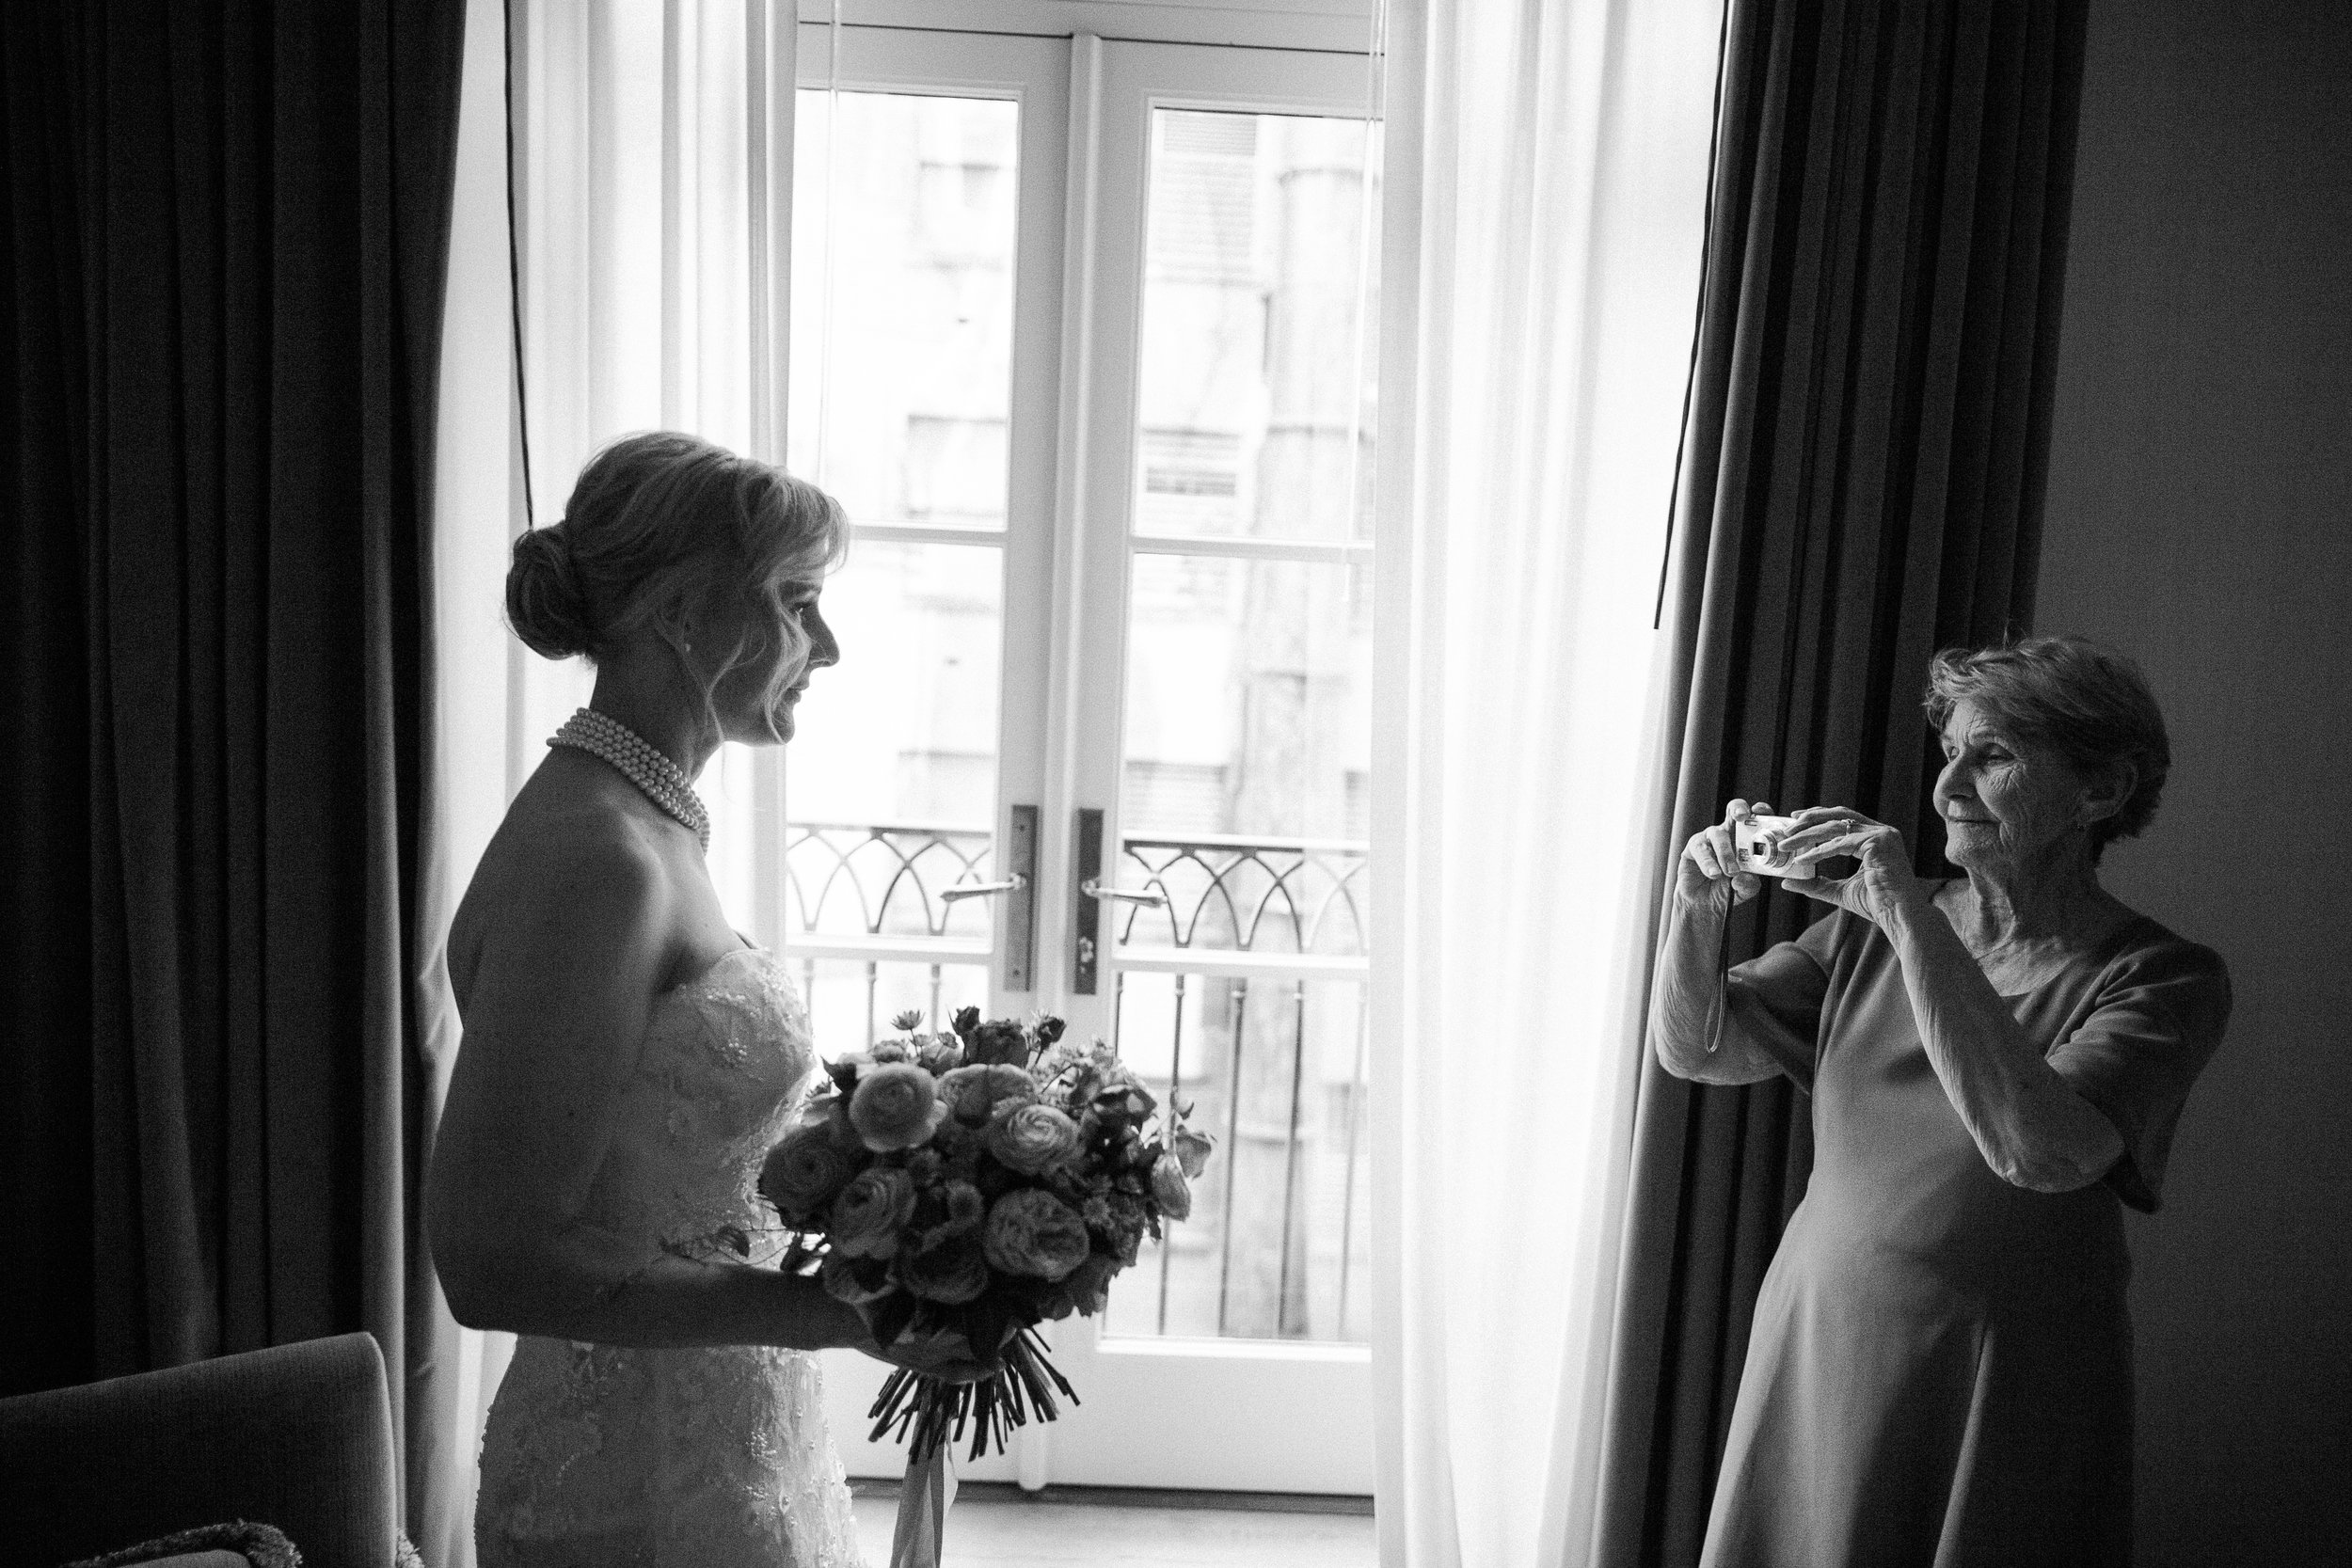 Suzanne's mother takes a moment to capture her daughter, ready to be married.